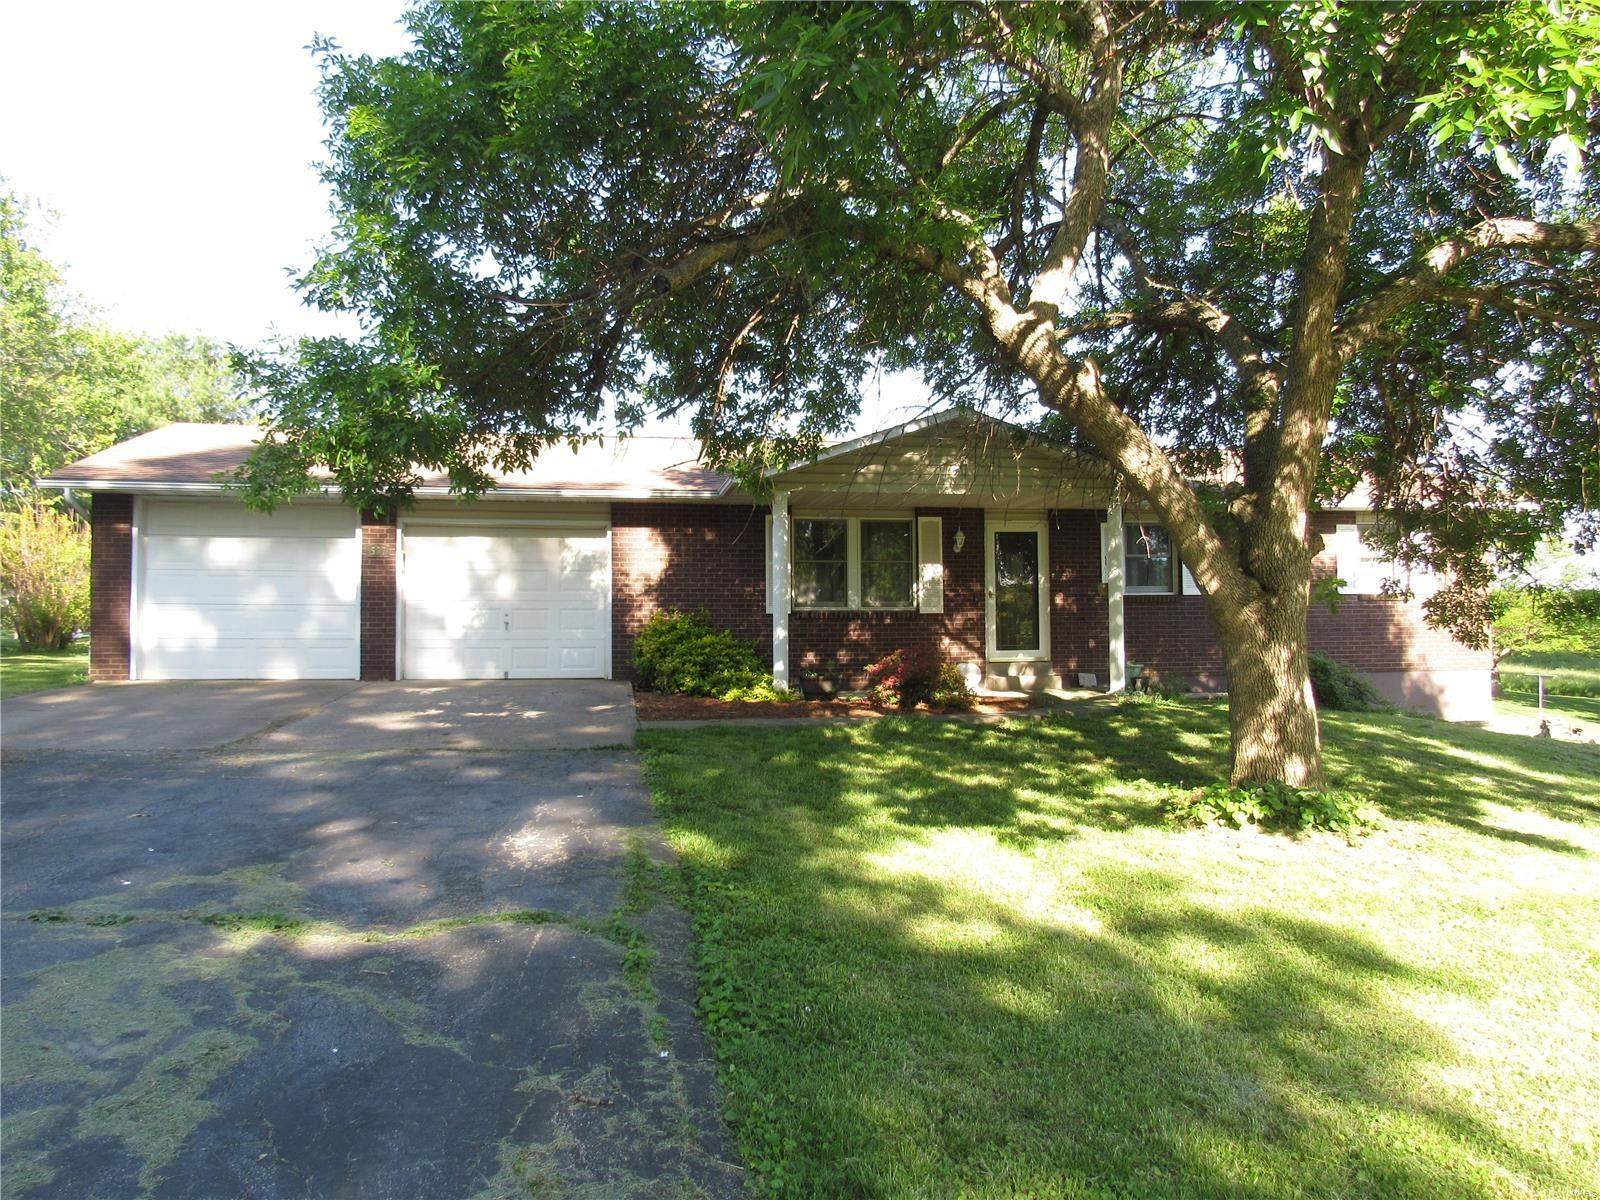 Photo of 537 Outer Circle Rd, Perryville, MO 63775 (MLS # 21026756)